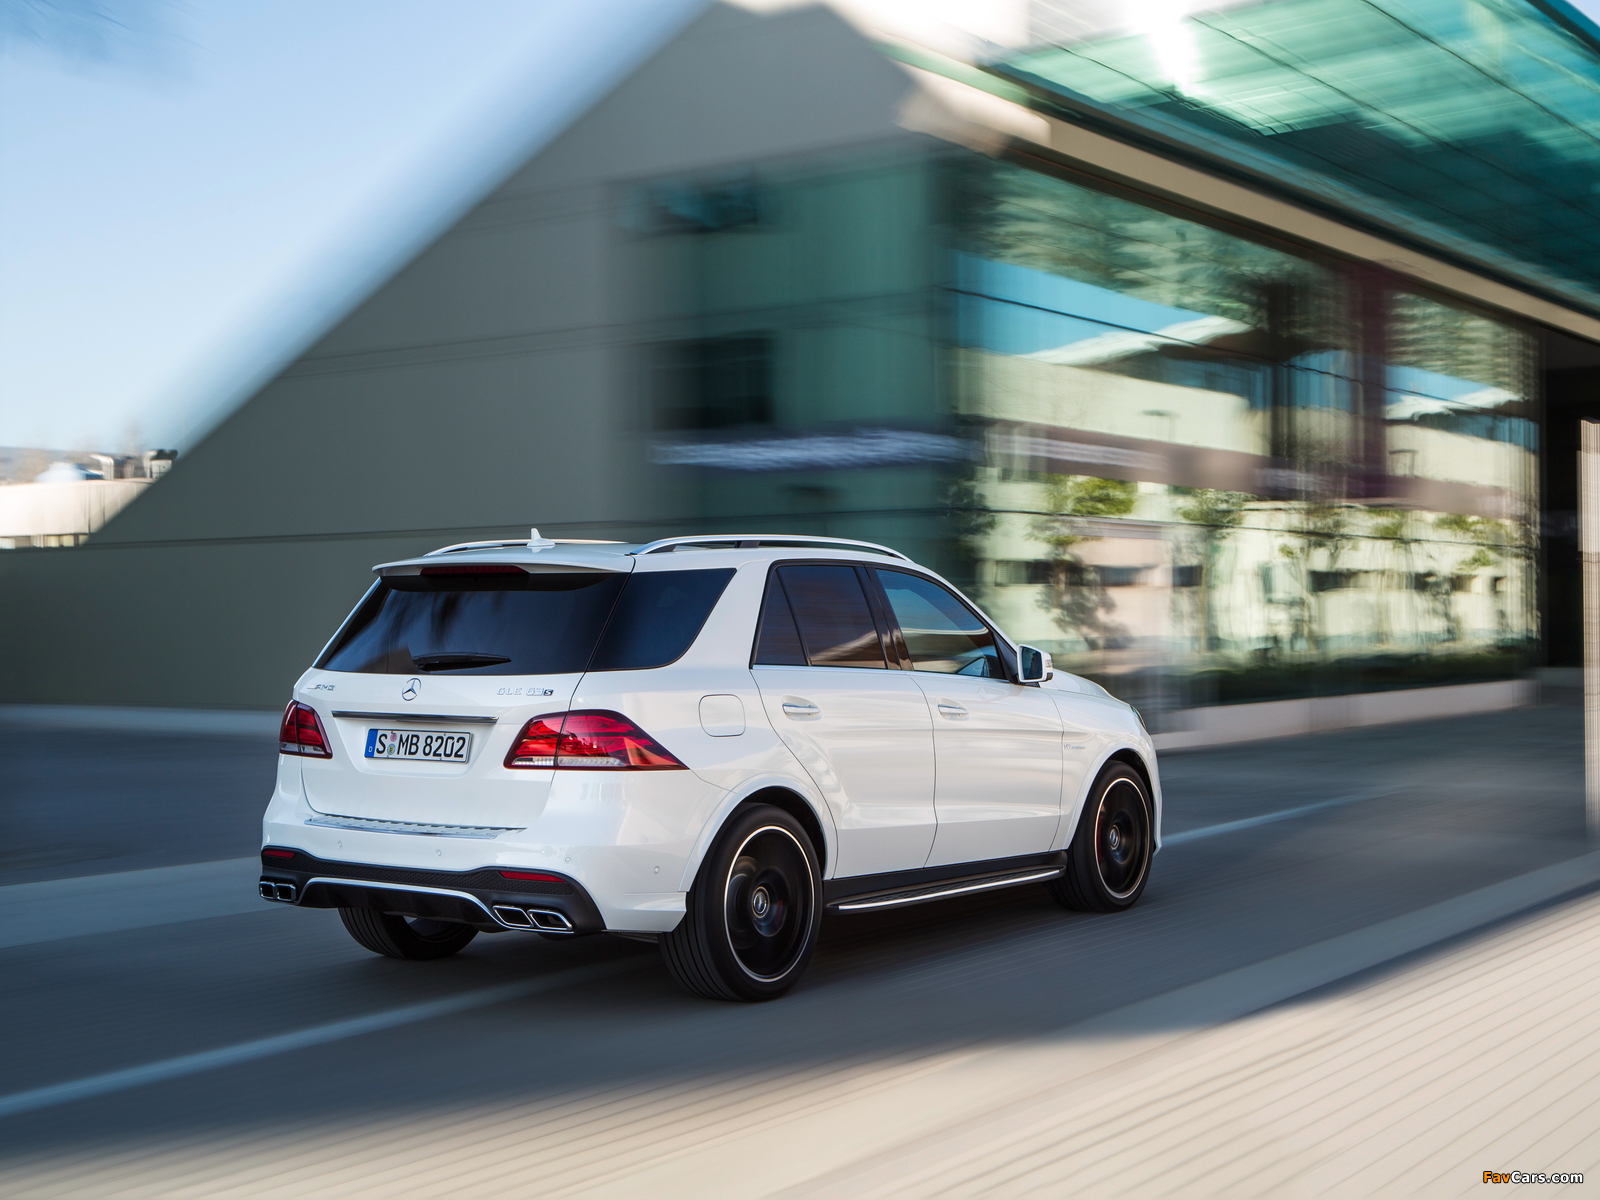 Mercedes-AMG GLE 63 S 4MATIC (W166) 2015 wallpapers (1600 x 1200)